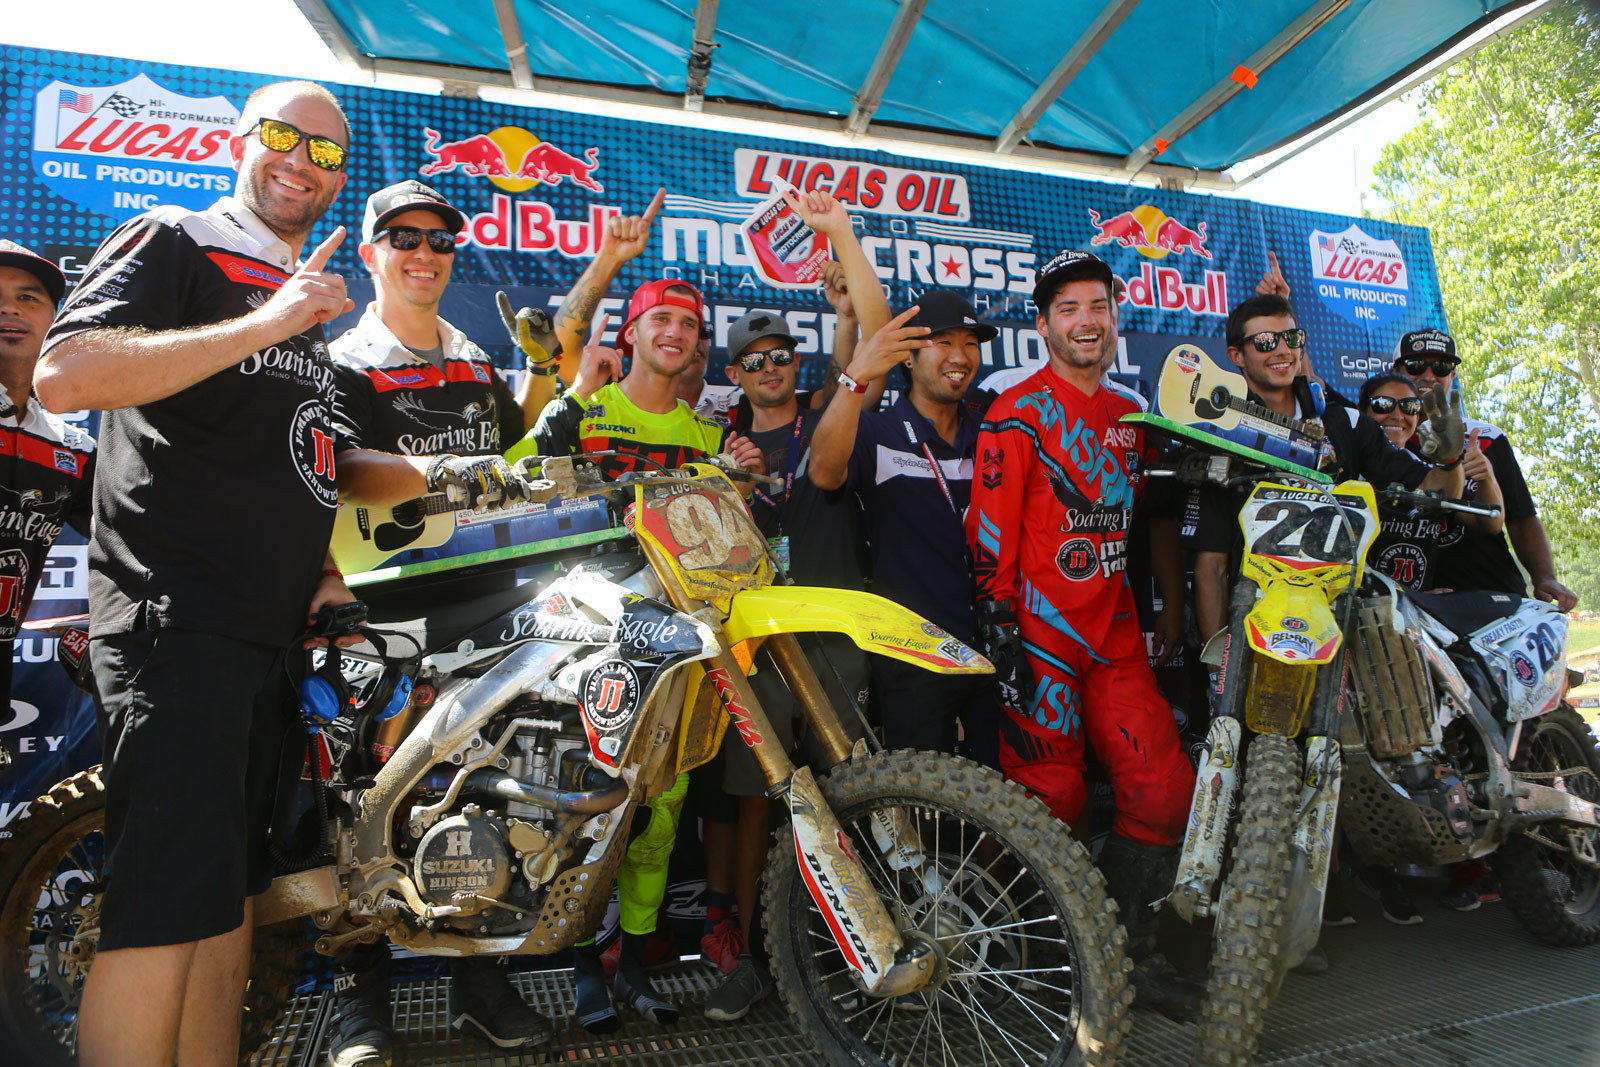 RCH Soaring Eagle/Jimmy Johns/Suzuki Factory Racing - Vital MX Pit Bits: Muddy Creek - Motocross Pictures - Vital MX